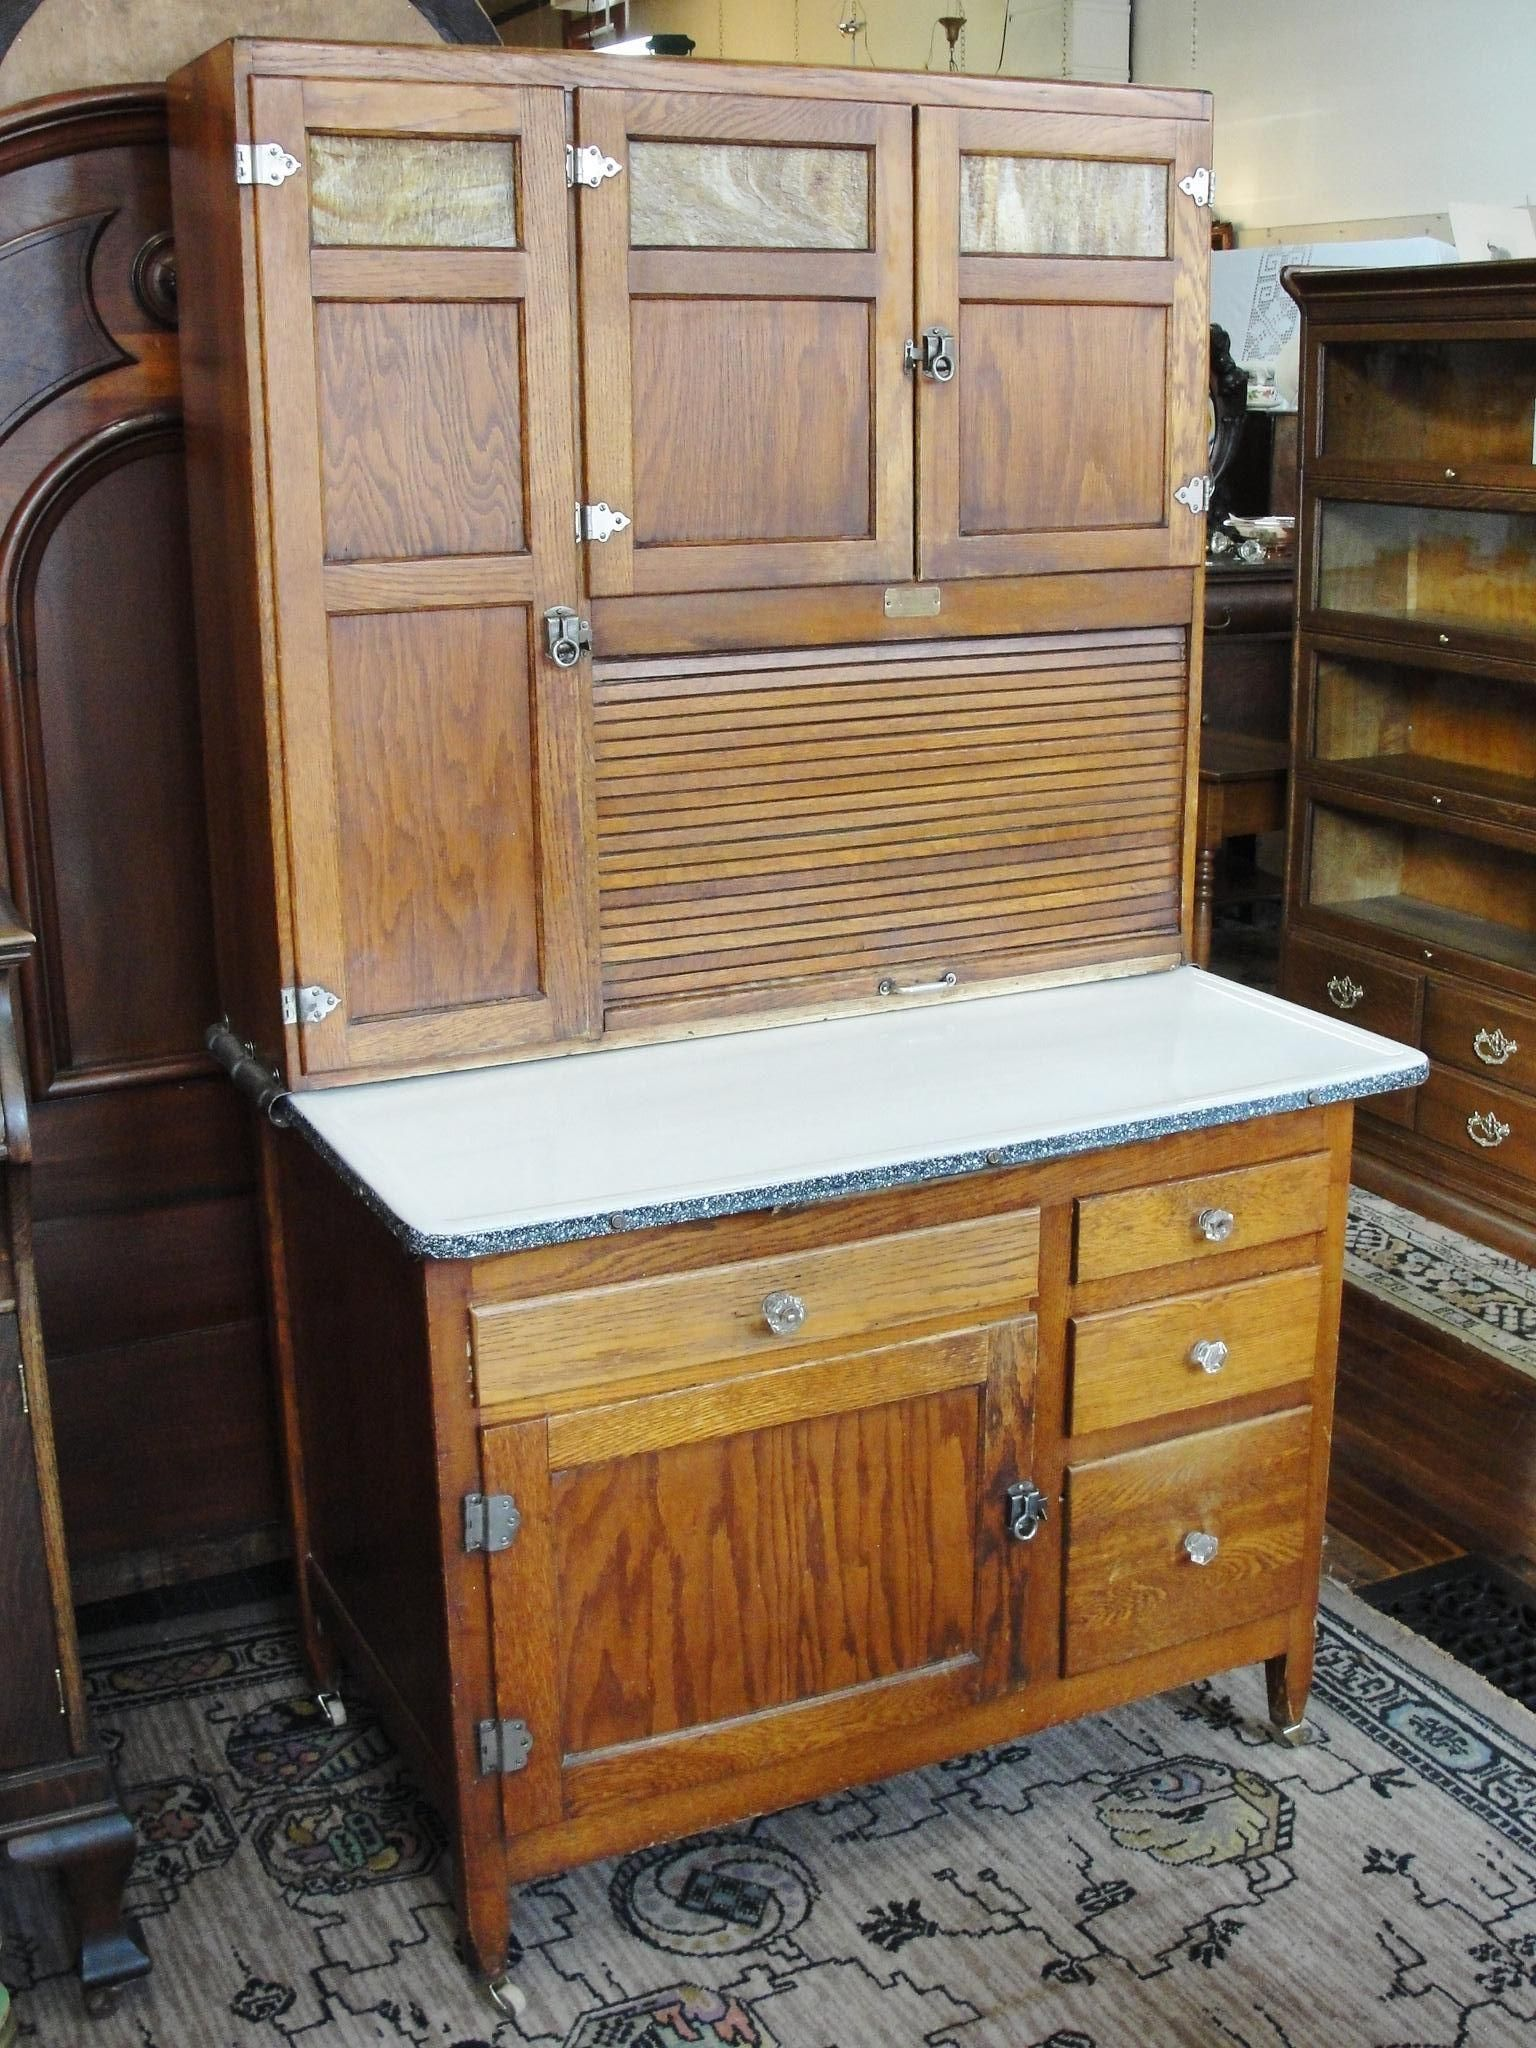 Original Finish 1920 S Oak Sellers Kitchen Cabinet Antique Kitchen Cabinets Antique Kitchen White Furniture Living Room